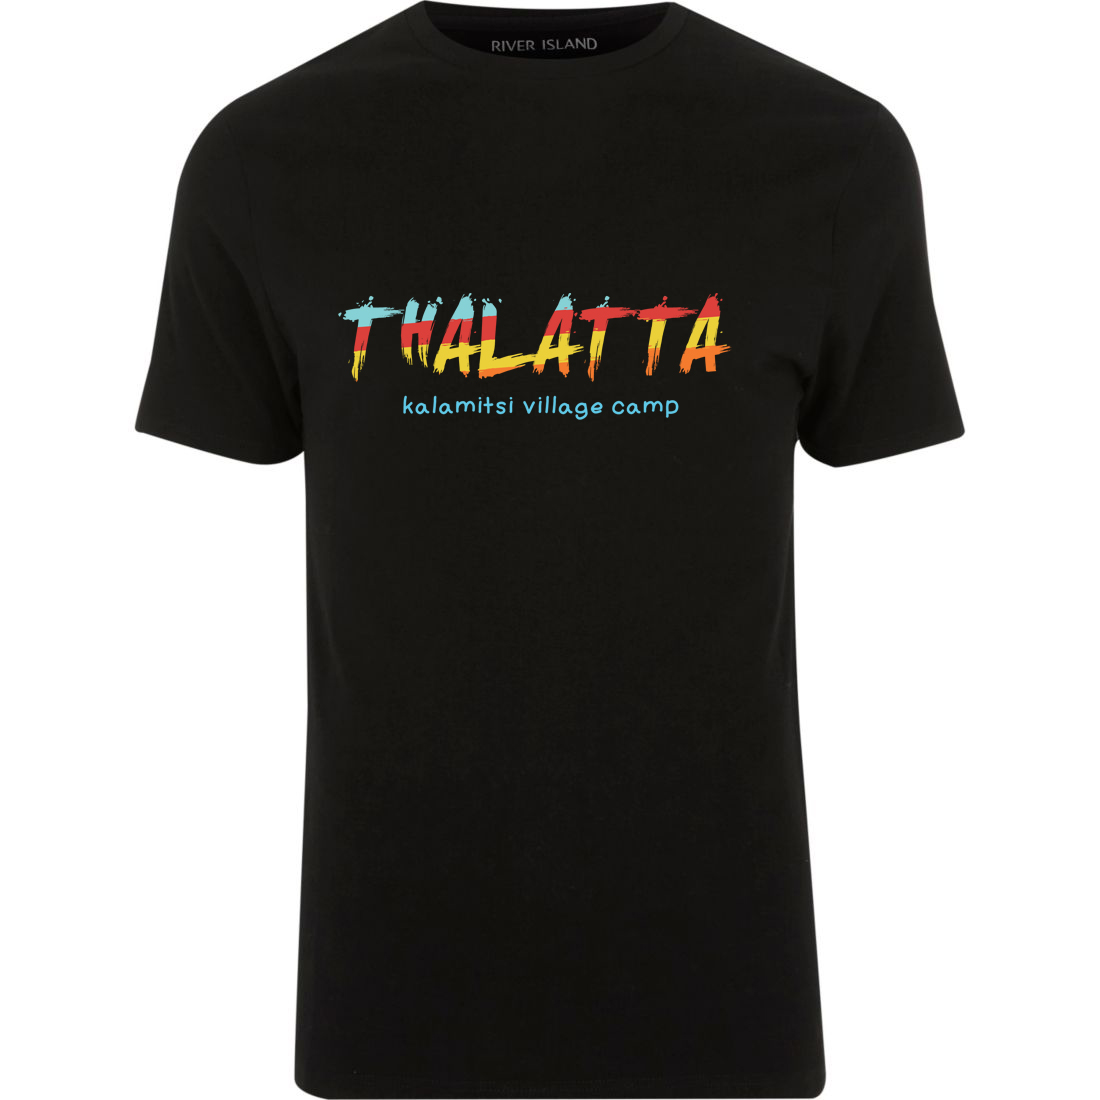 thalatta camp t-shirt (μαύρο)